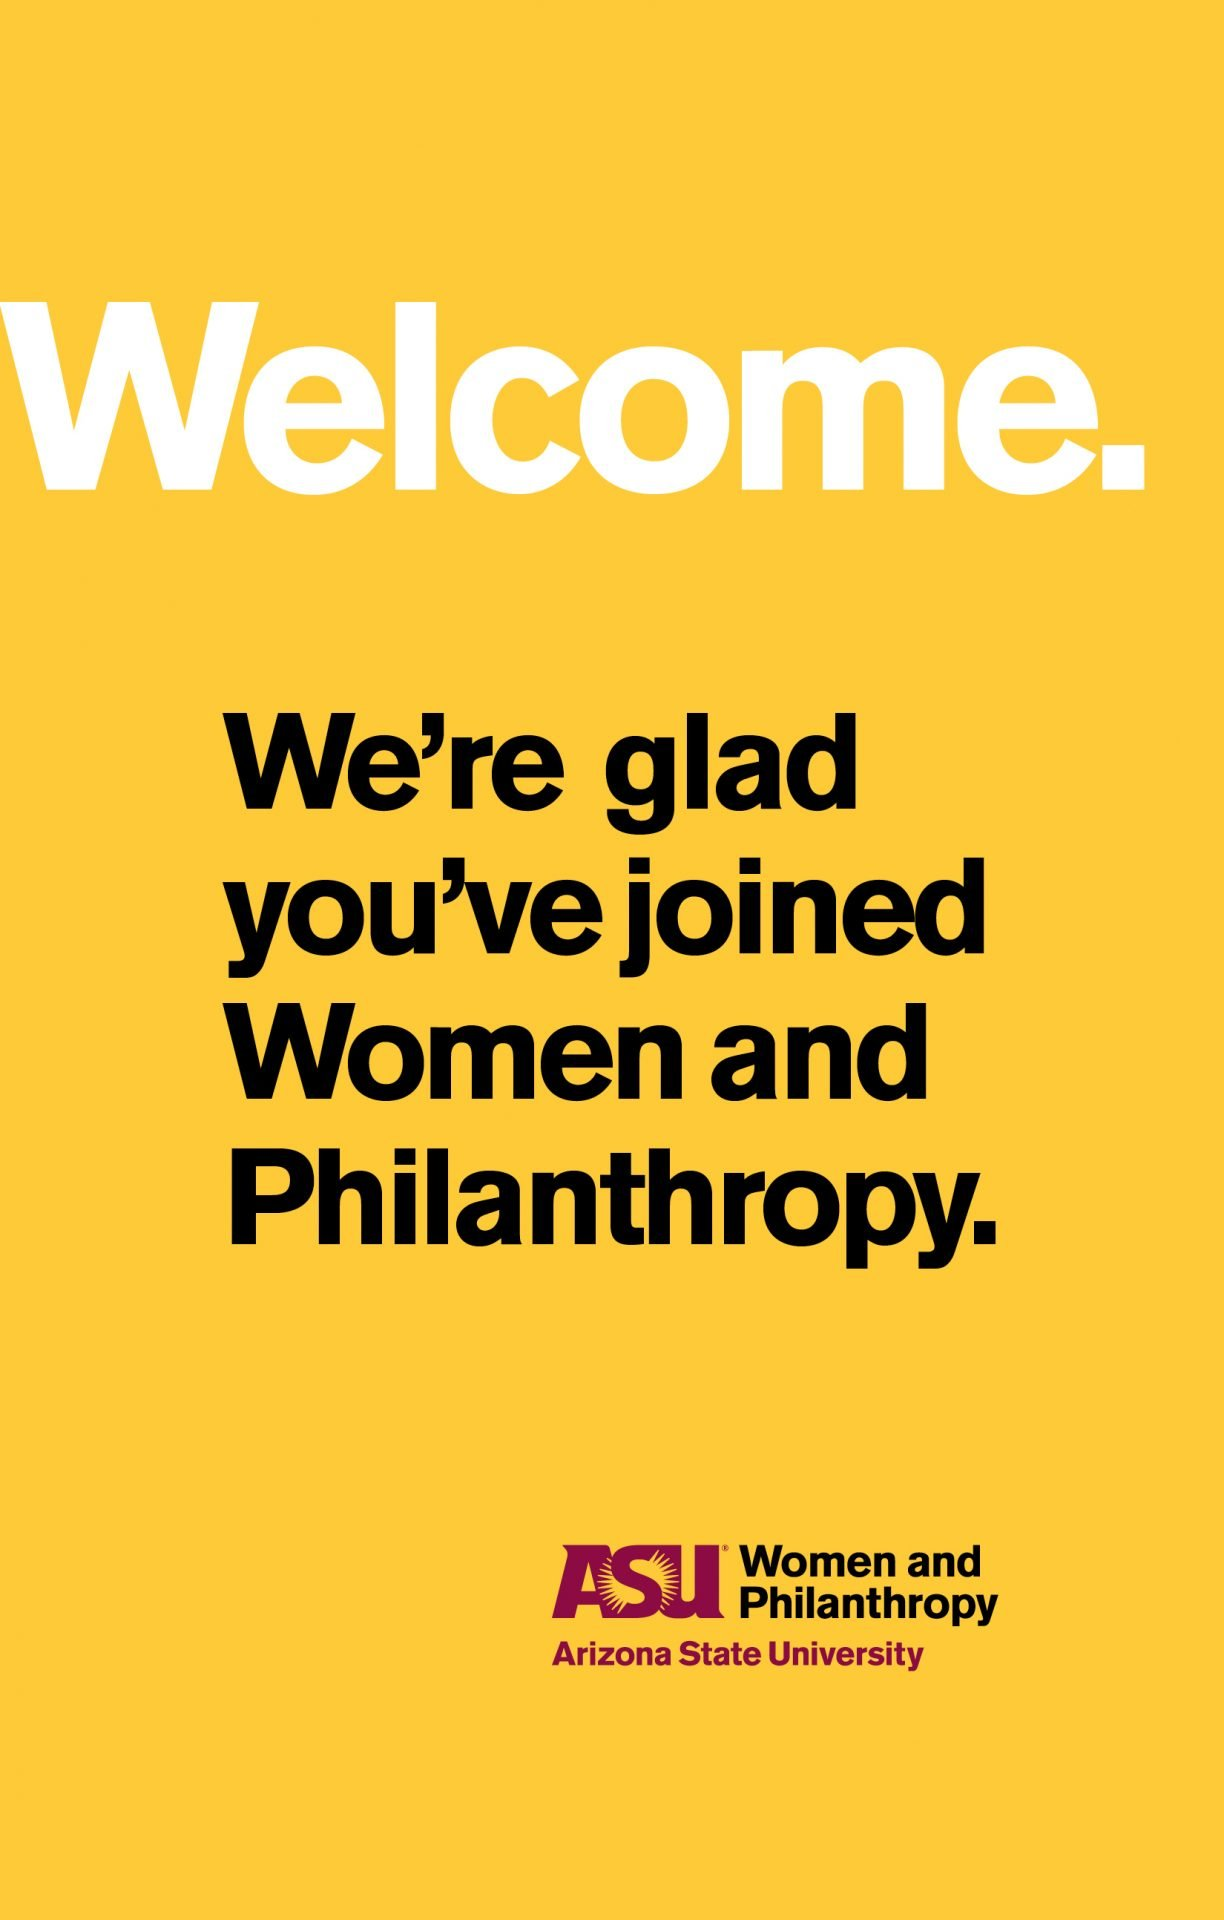 ASU-Women-Philanthropy-WelcomeCard-A9